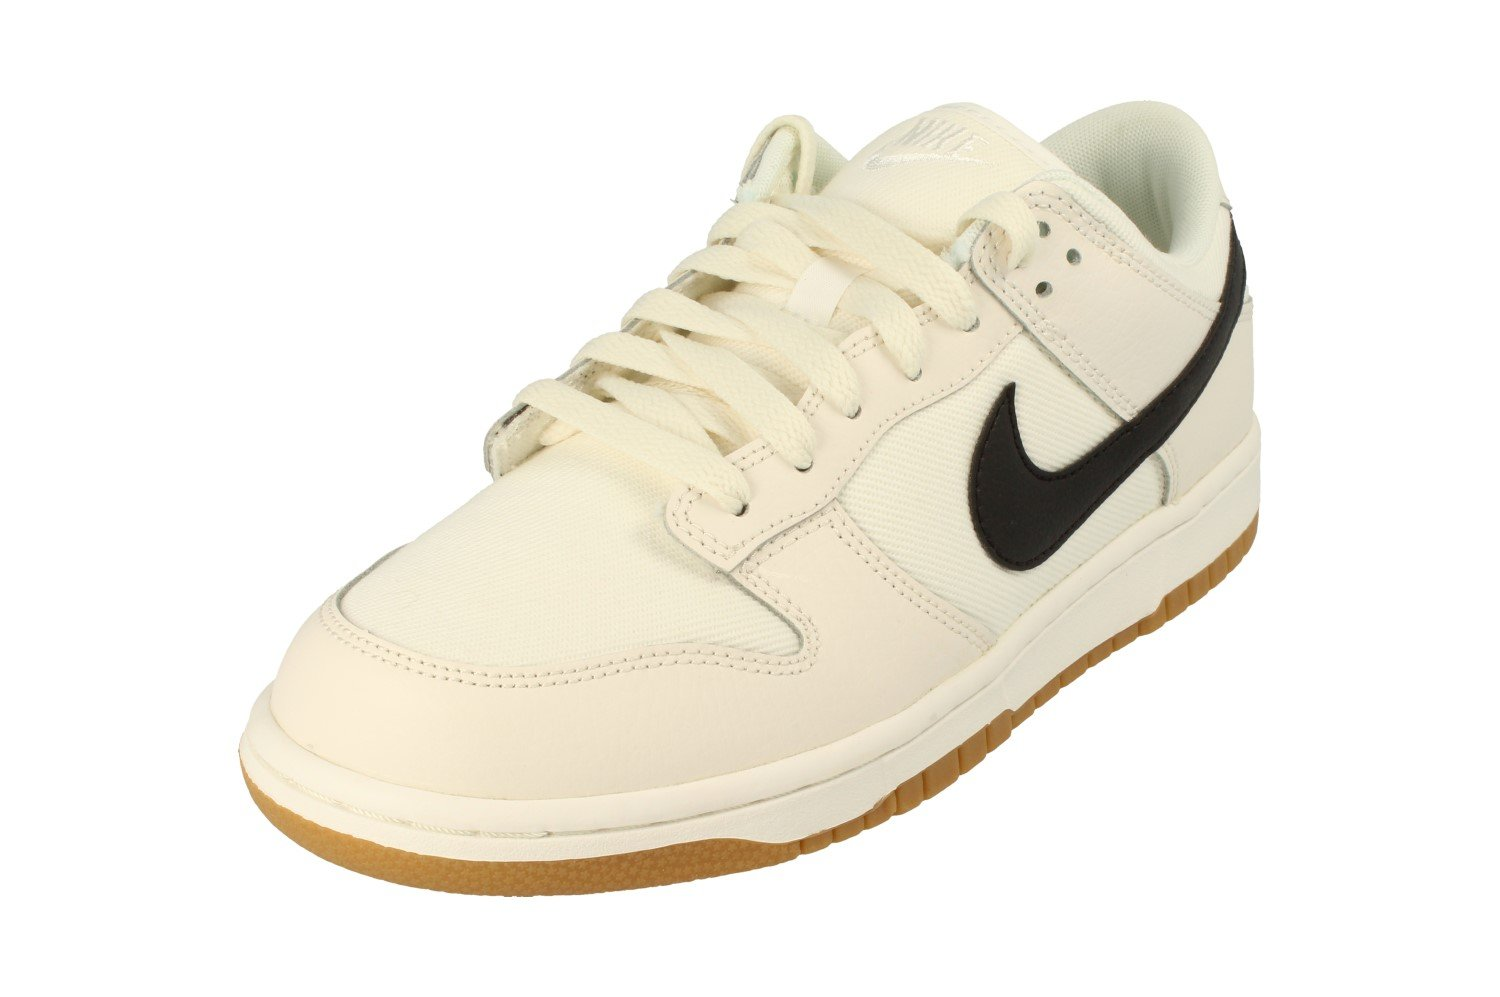 Nike Herren Sneaker Cool Grey White 011 42 EU  41 EU|White Black White 100